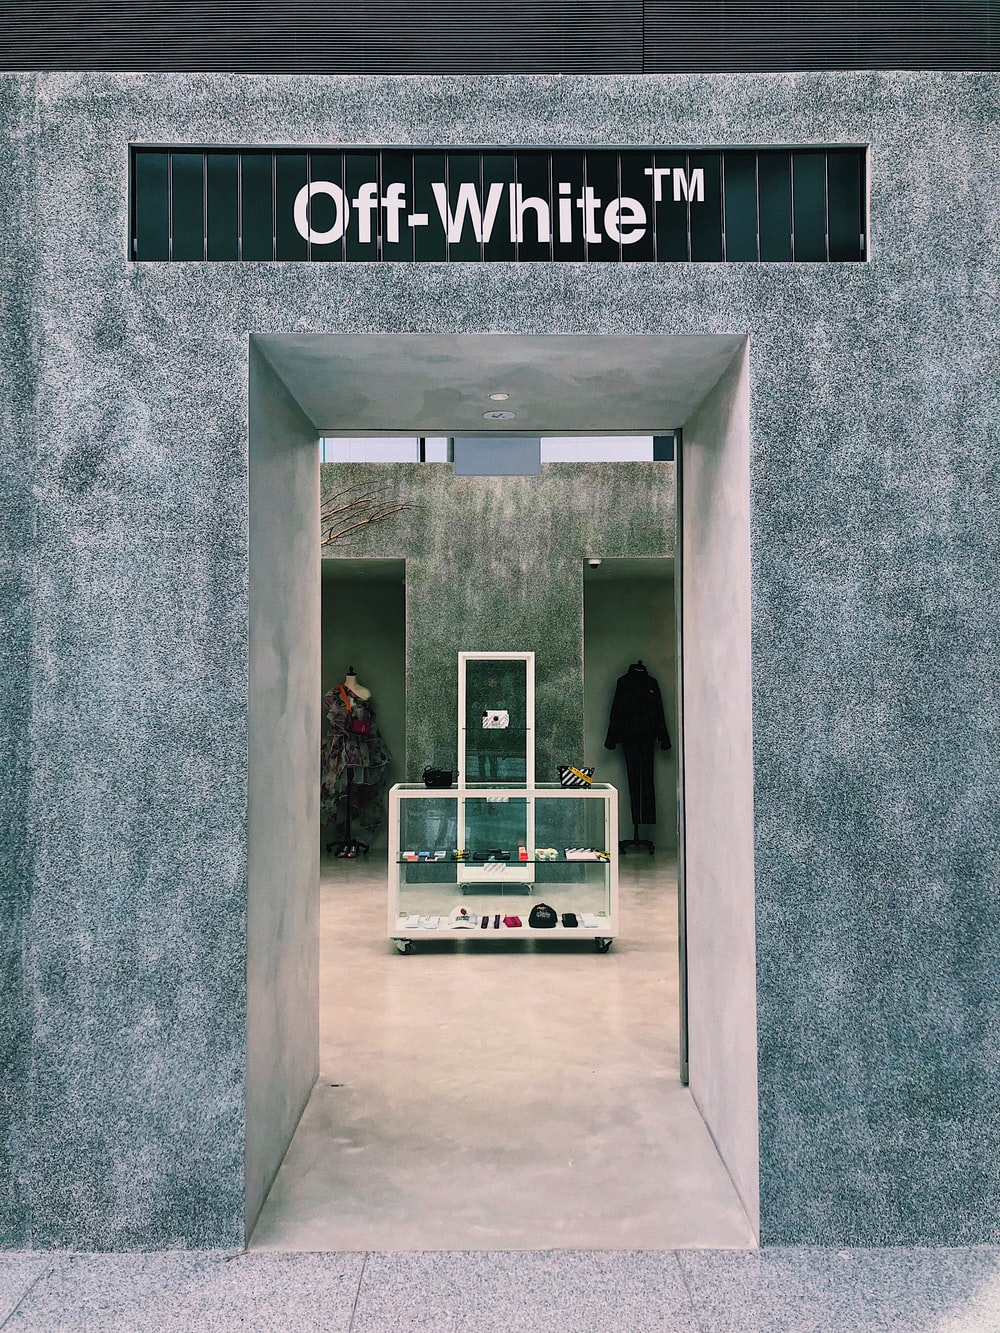 off-white walls